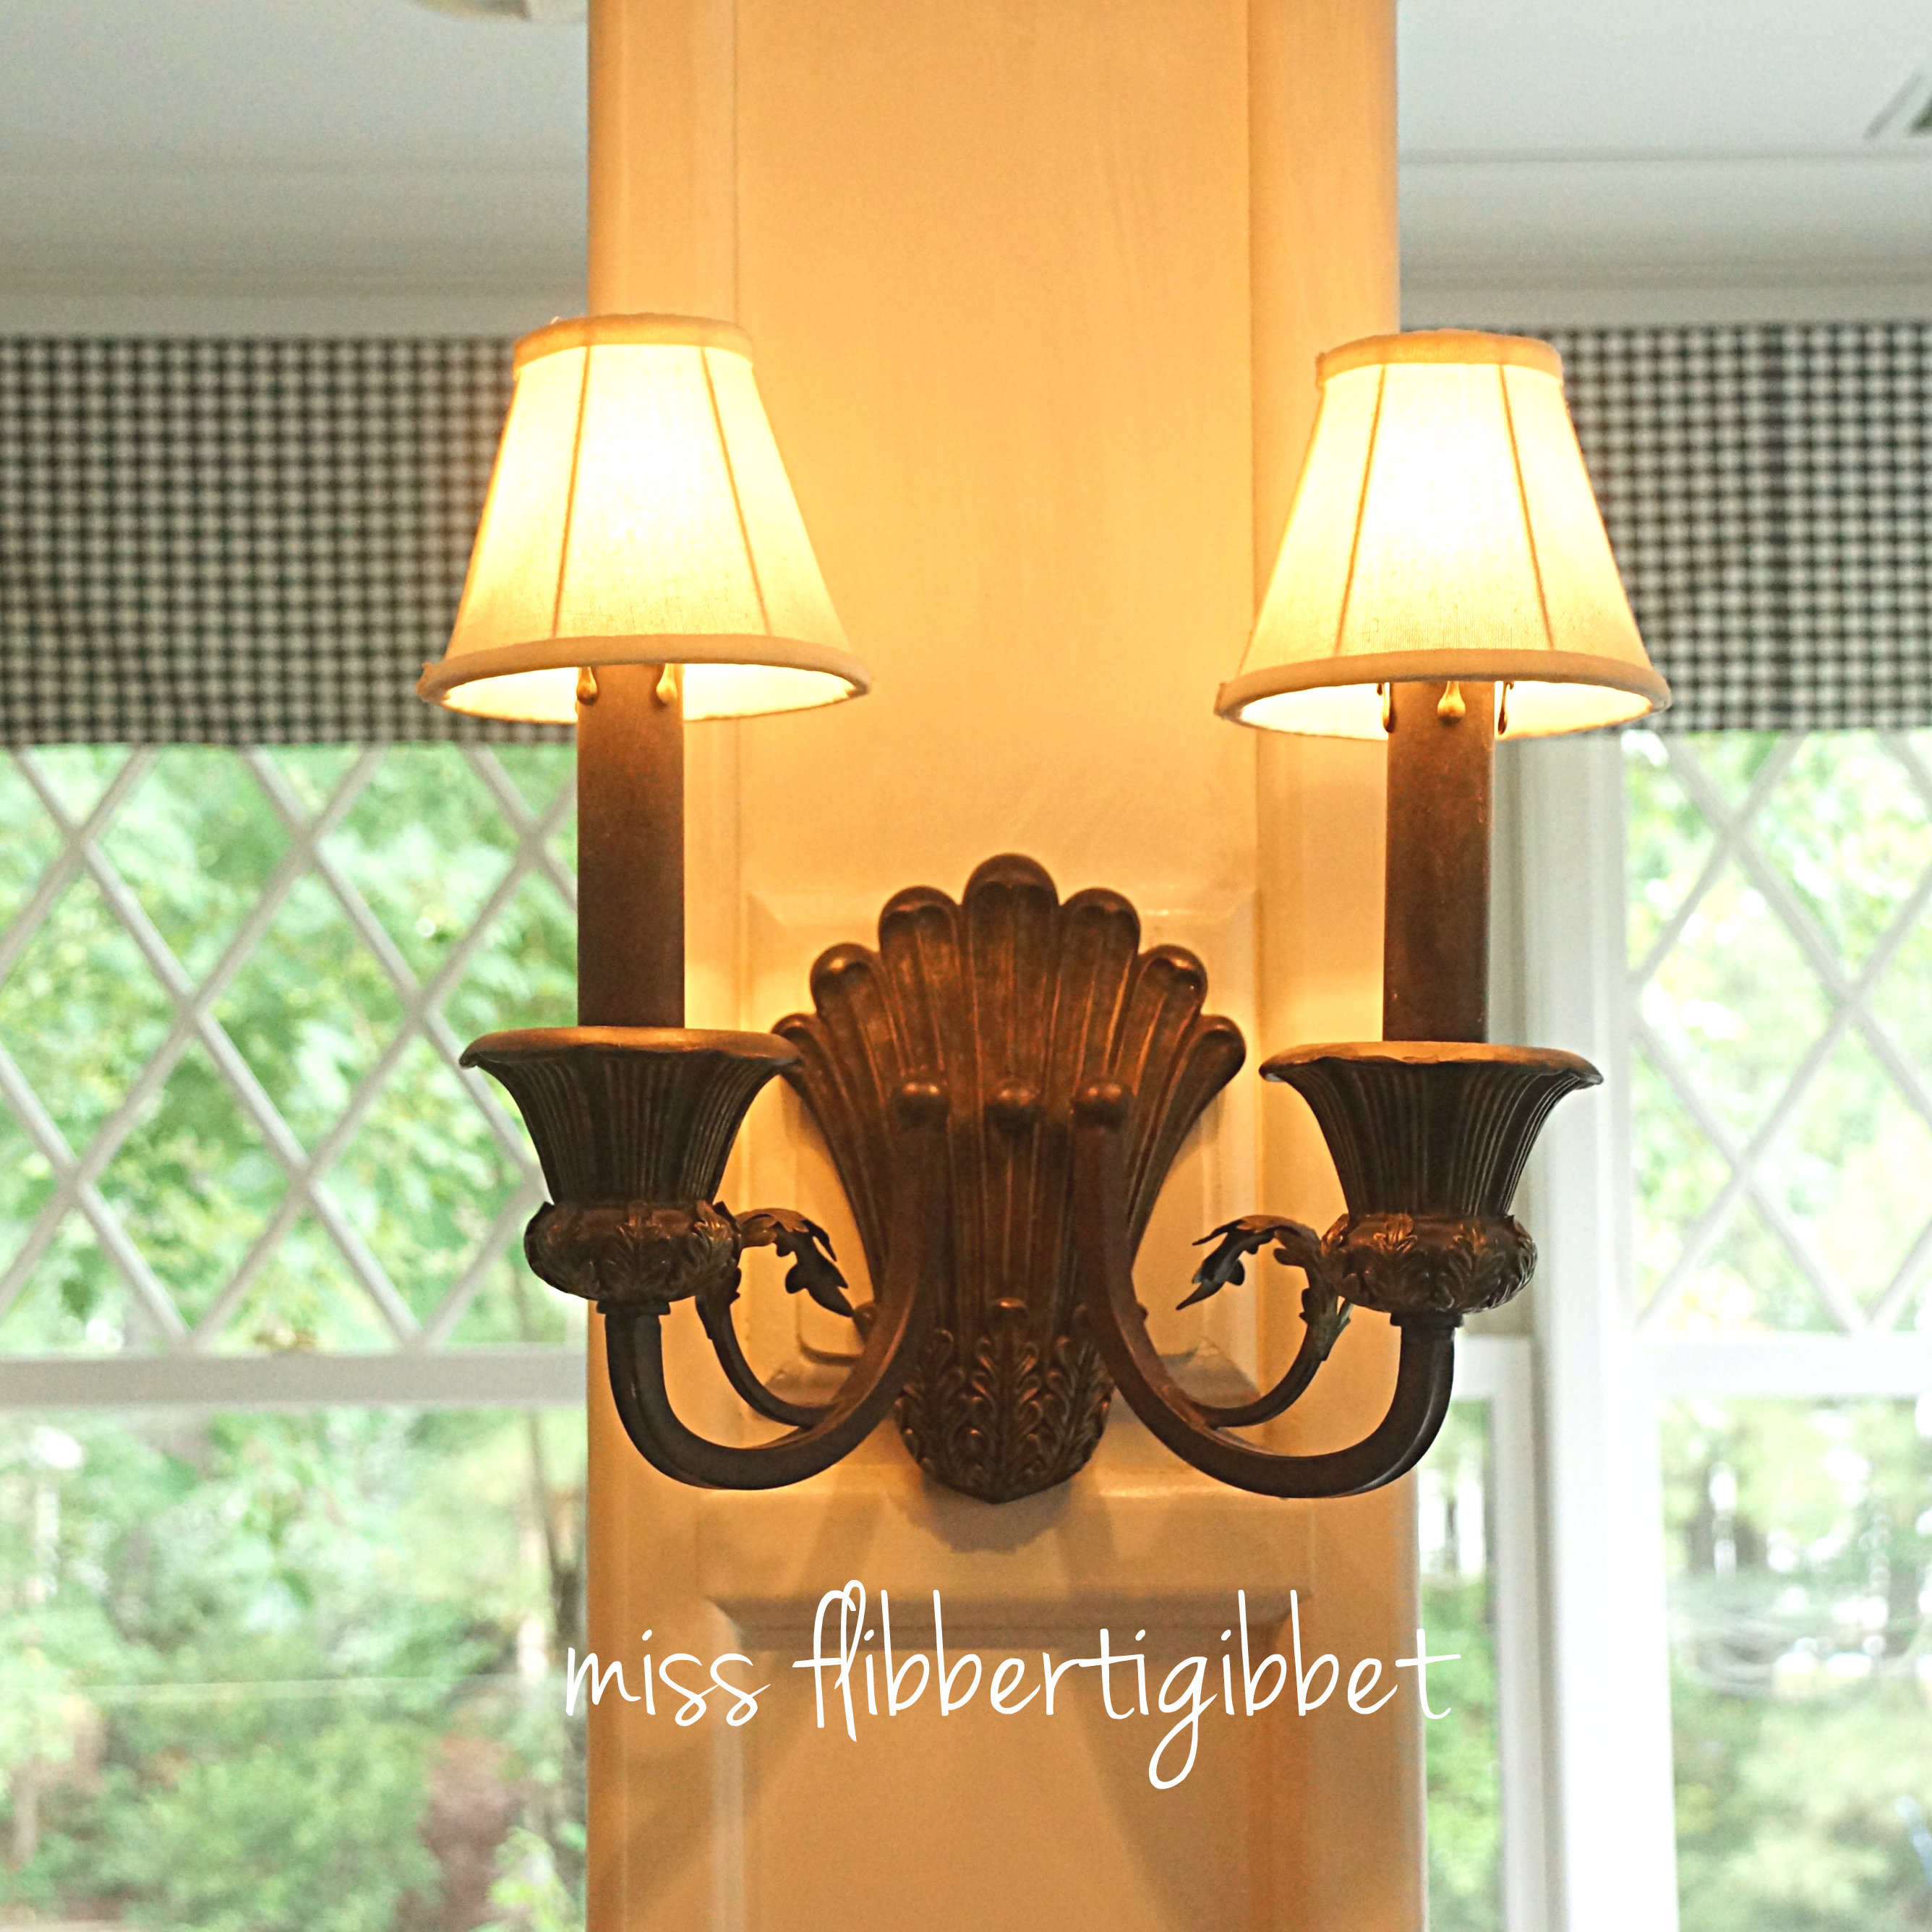 Hanging New Light Fixtures How To Save Money Building A